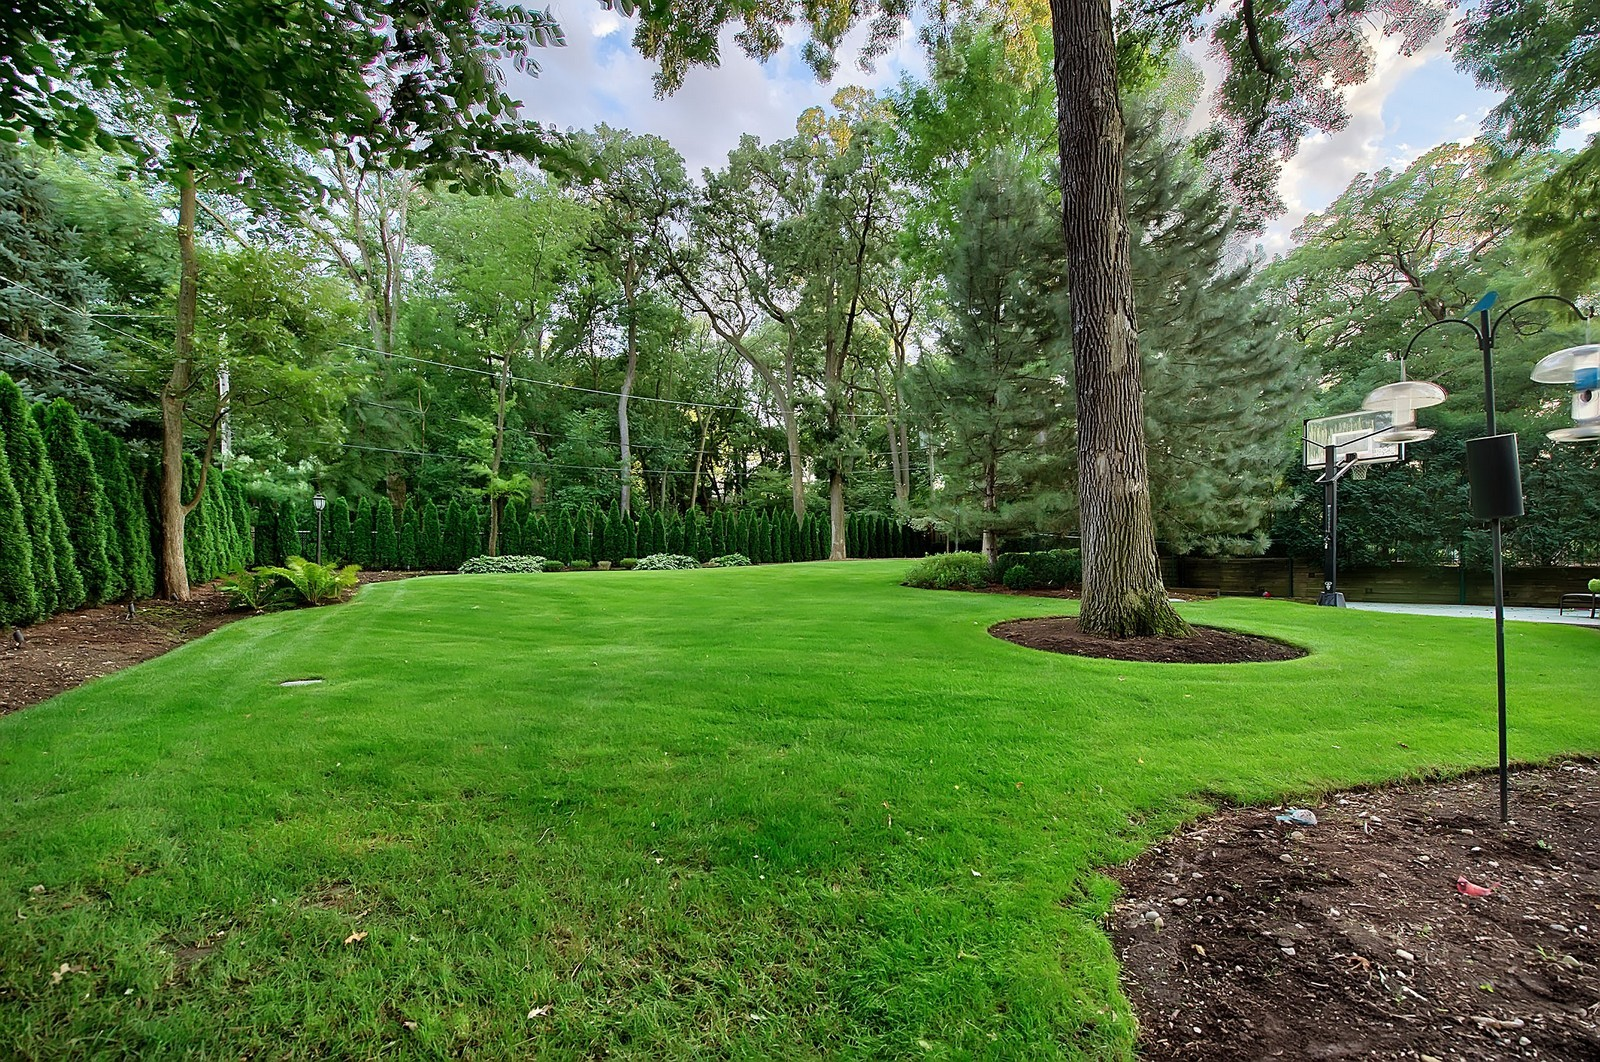 Real Estate Photography - 656 E 6th St, Hinsdale, IL, 60521 - Location 1